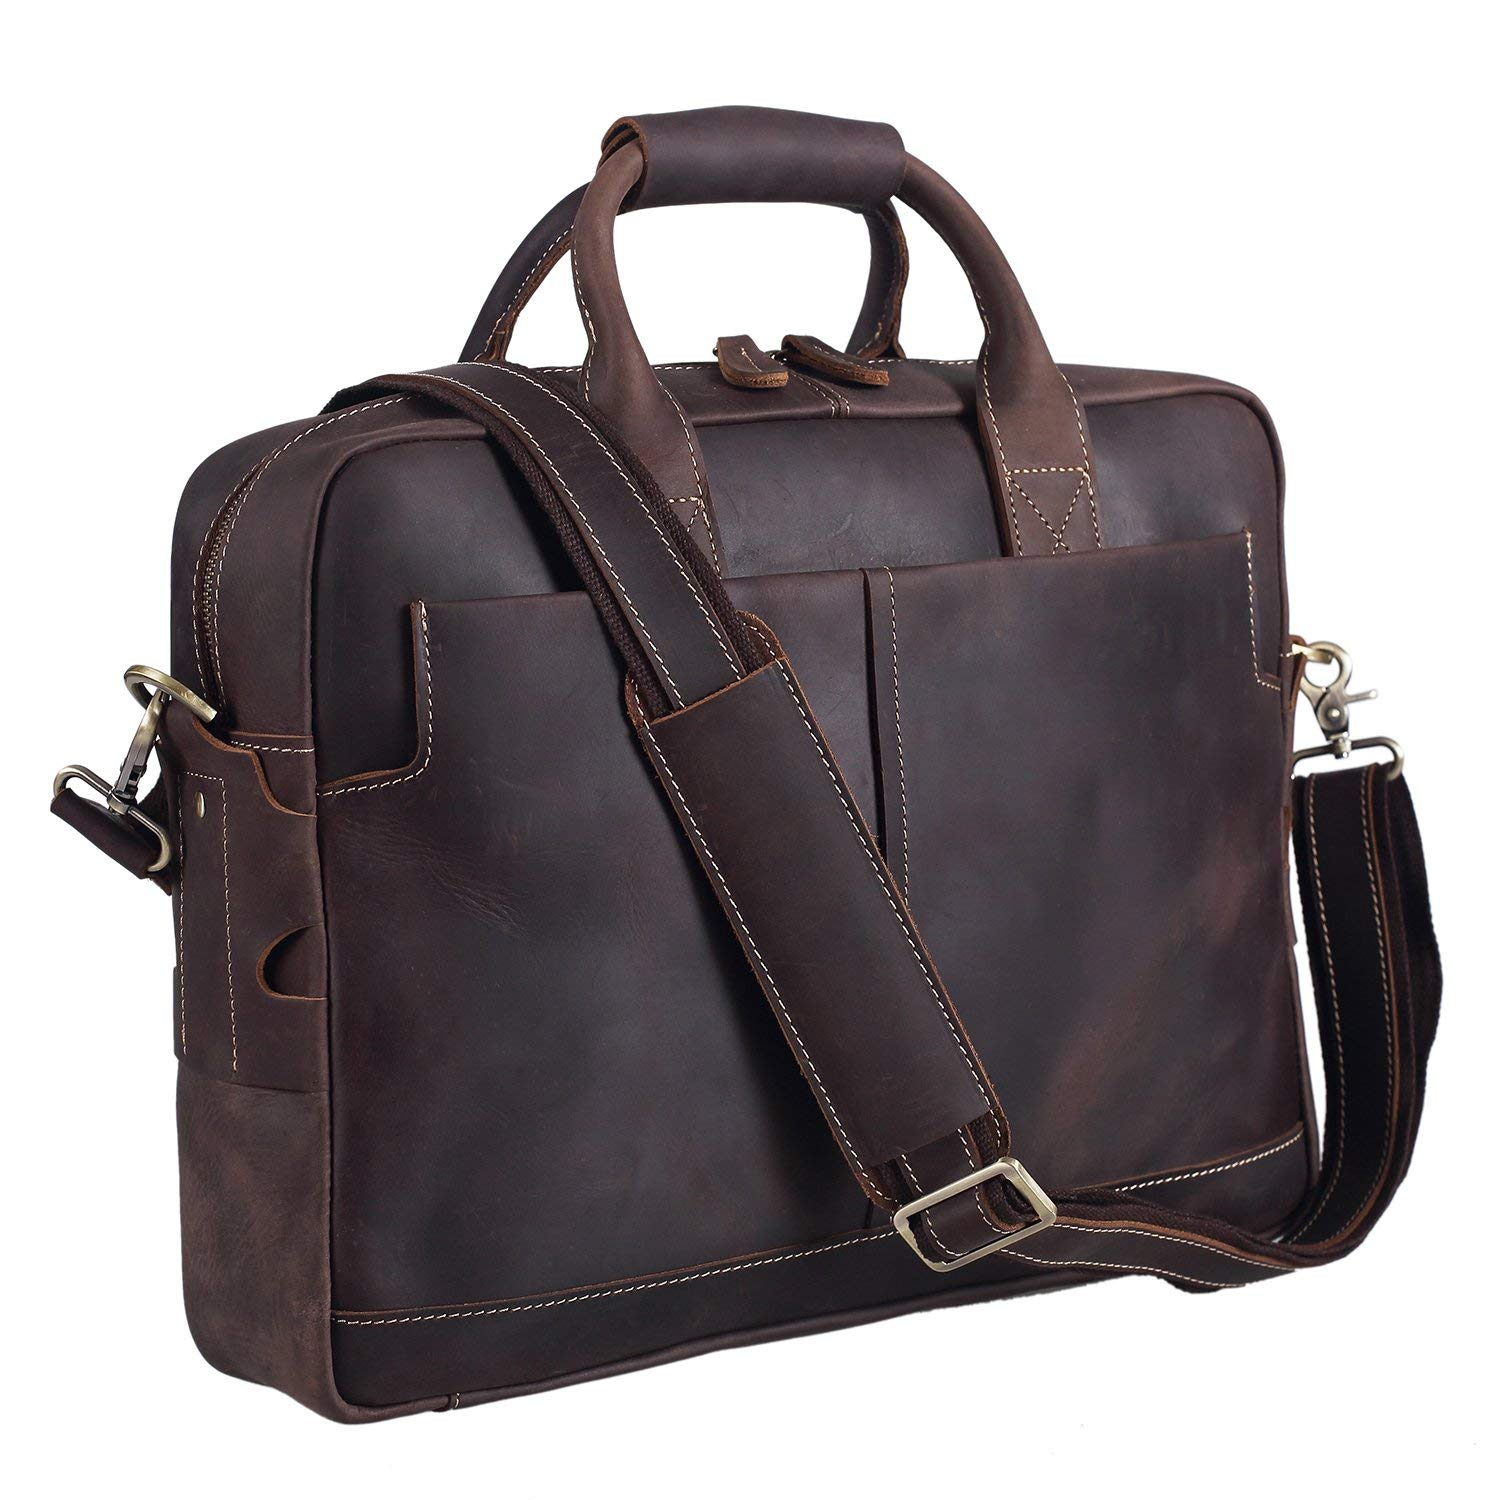 9d4098a4c6 Amazon.com: Polare Men's Sturdy Genuine Leather 16'' Laptop Bag Briefcase  Shoulder Bag: Office Products